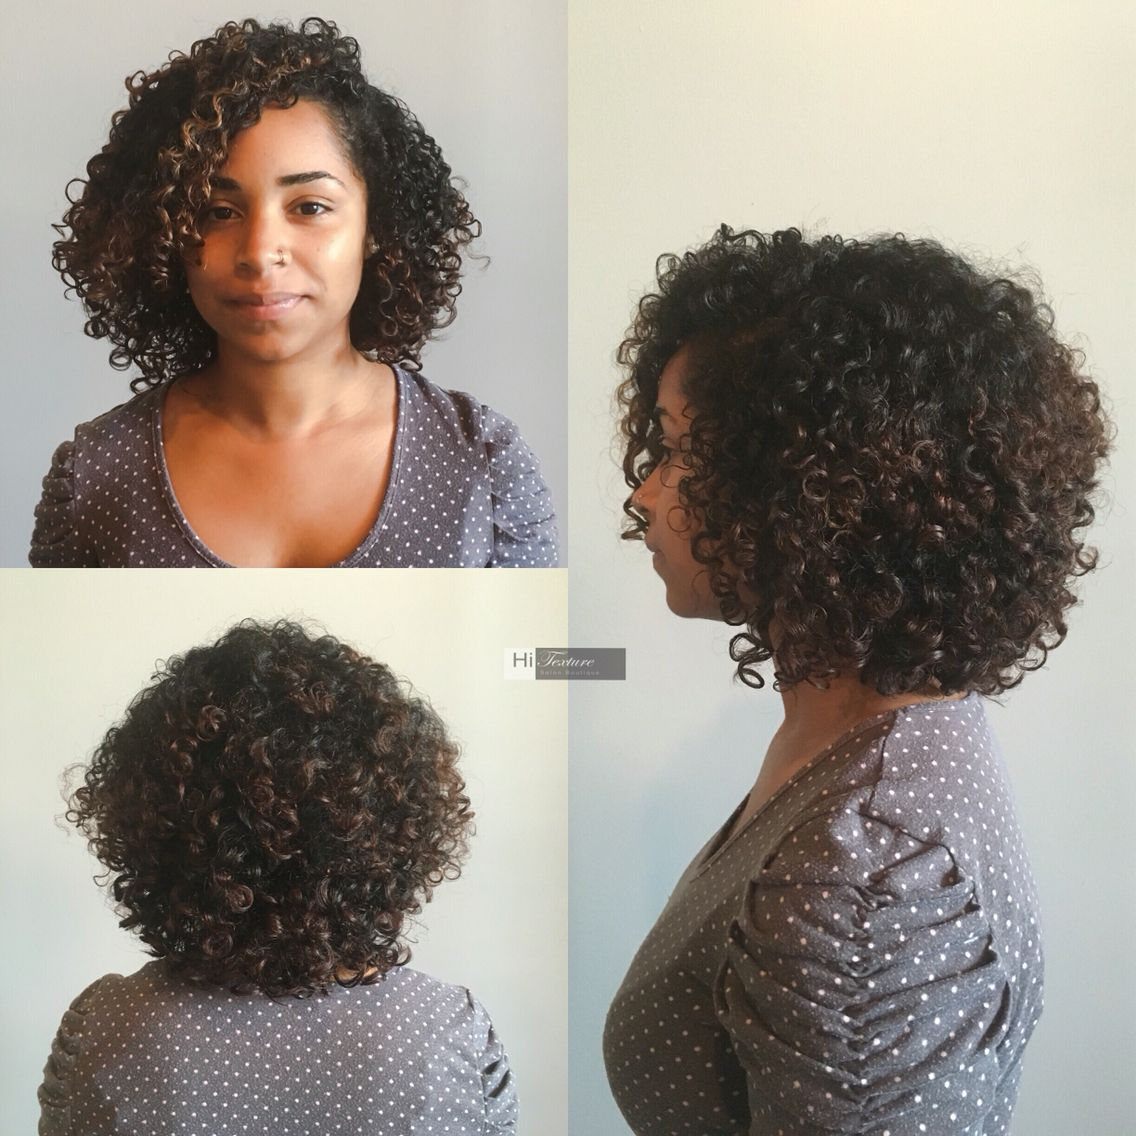 Uncategorized short gray african american hairstyles 4 tight curls short hairstyle 2013 - Curly Cut And Fingerstyle By Stylist Micah Naturalhair Curlyhair Curlycut Devacut Curly Haircutsafro